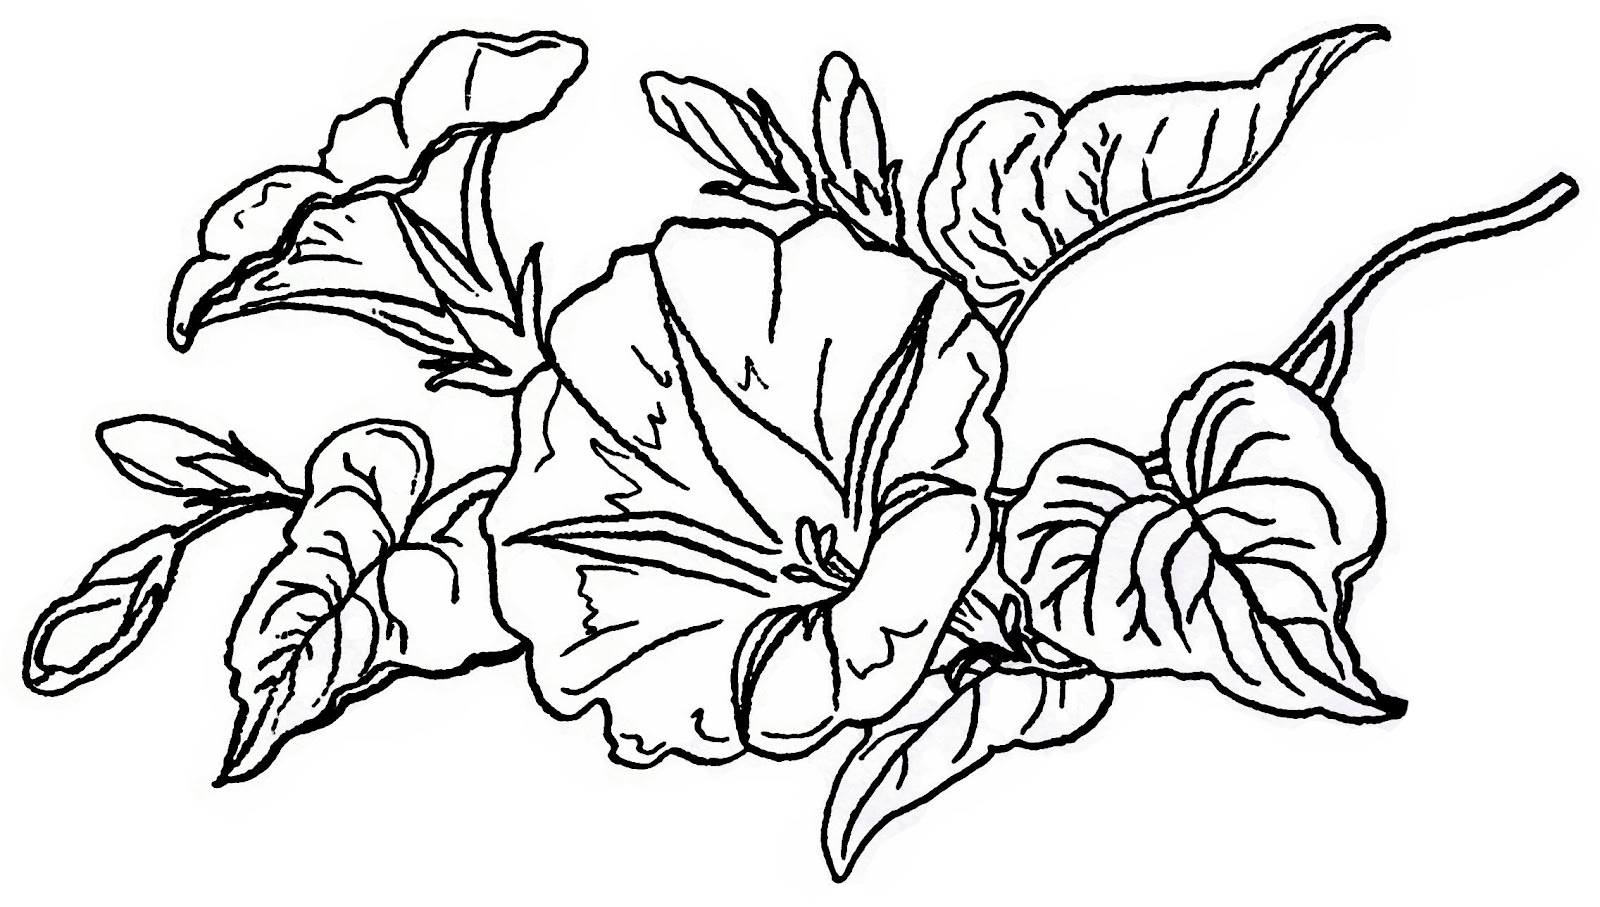 Morning Glory clipart black and white Lilac Flower Clipart art Clipart